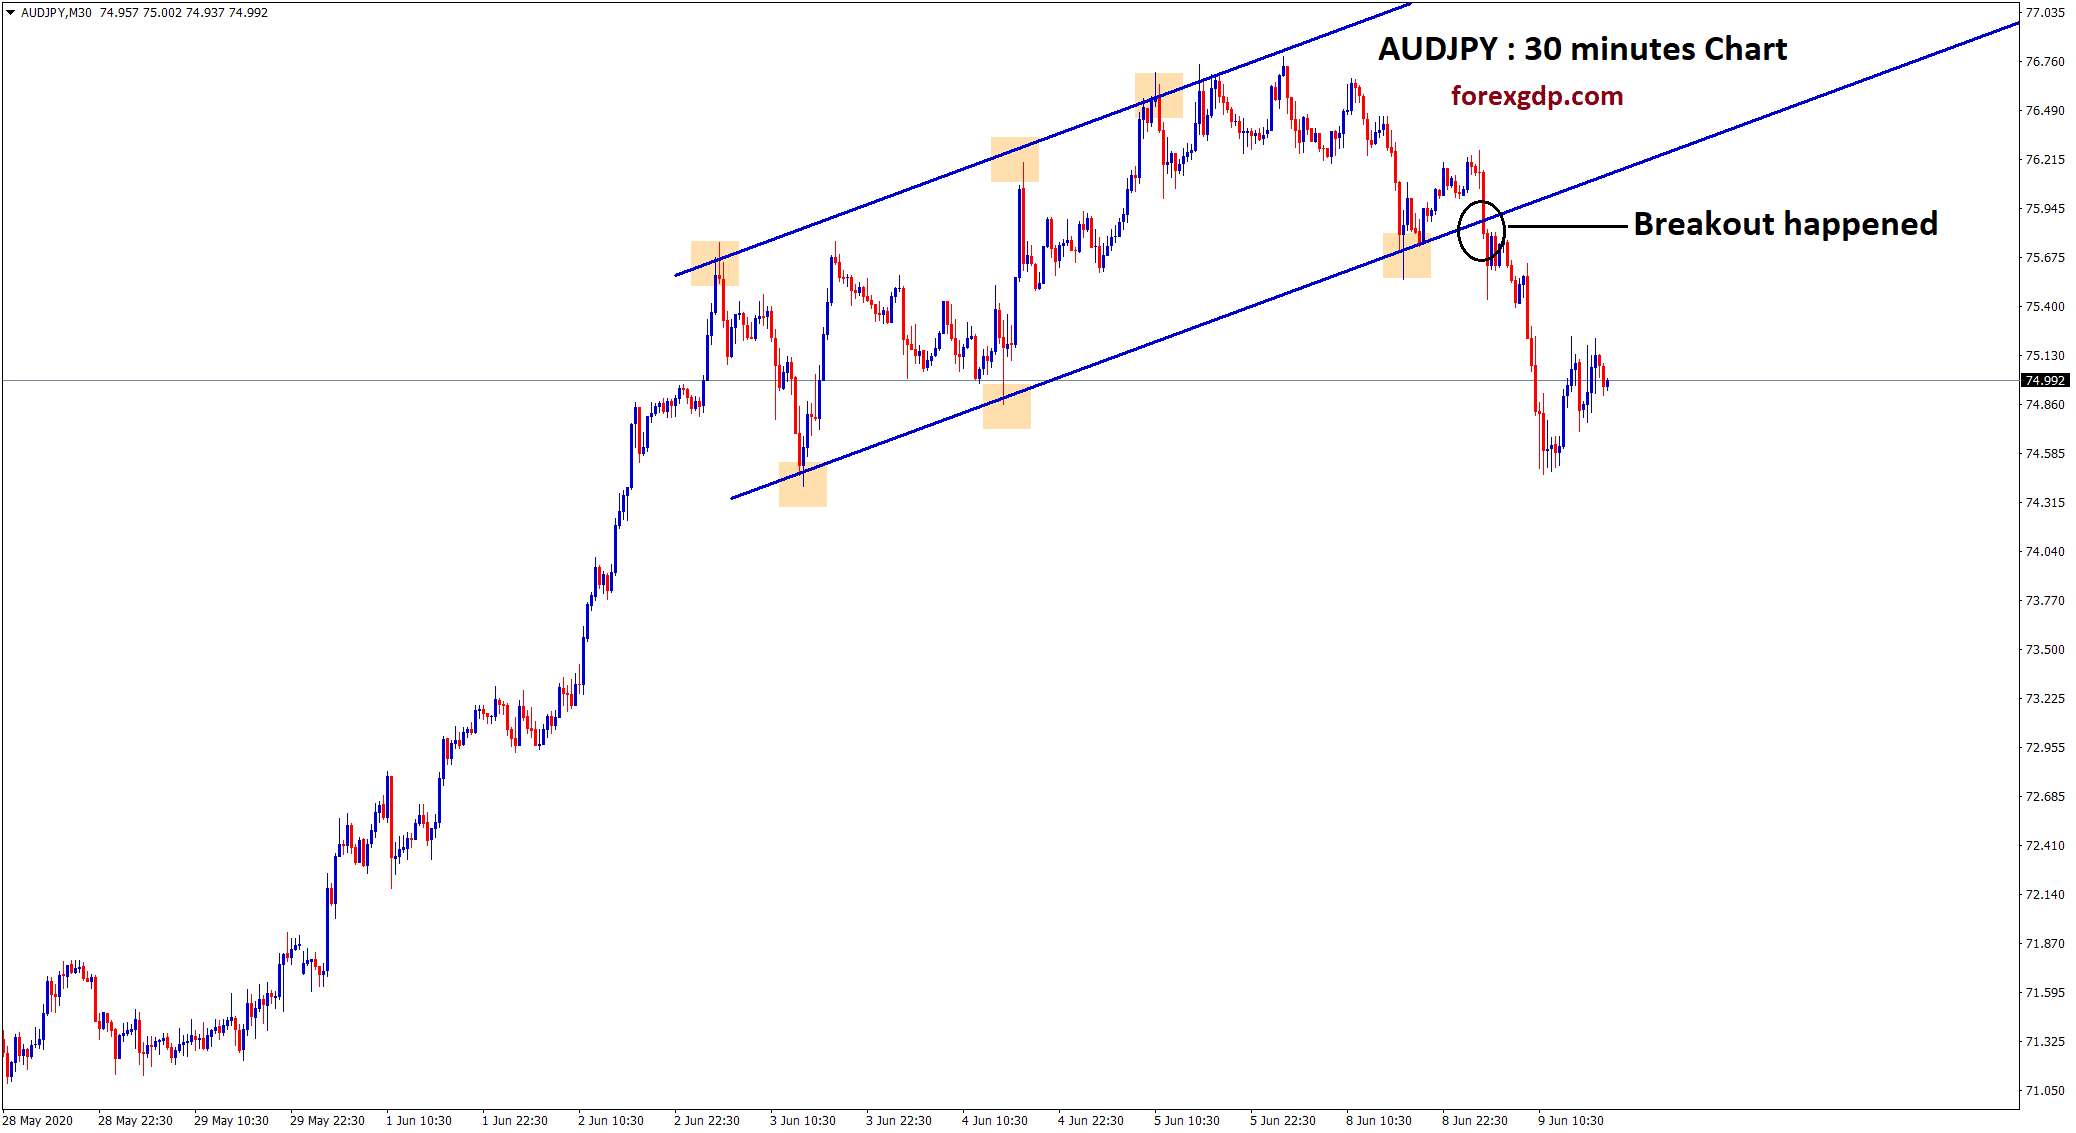 audjpy breakout happened at the resistance in thirty minutes chart